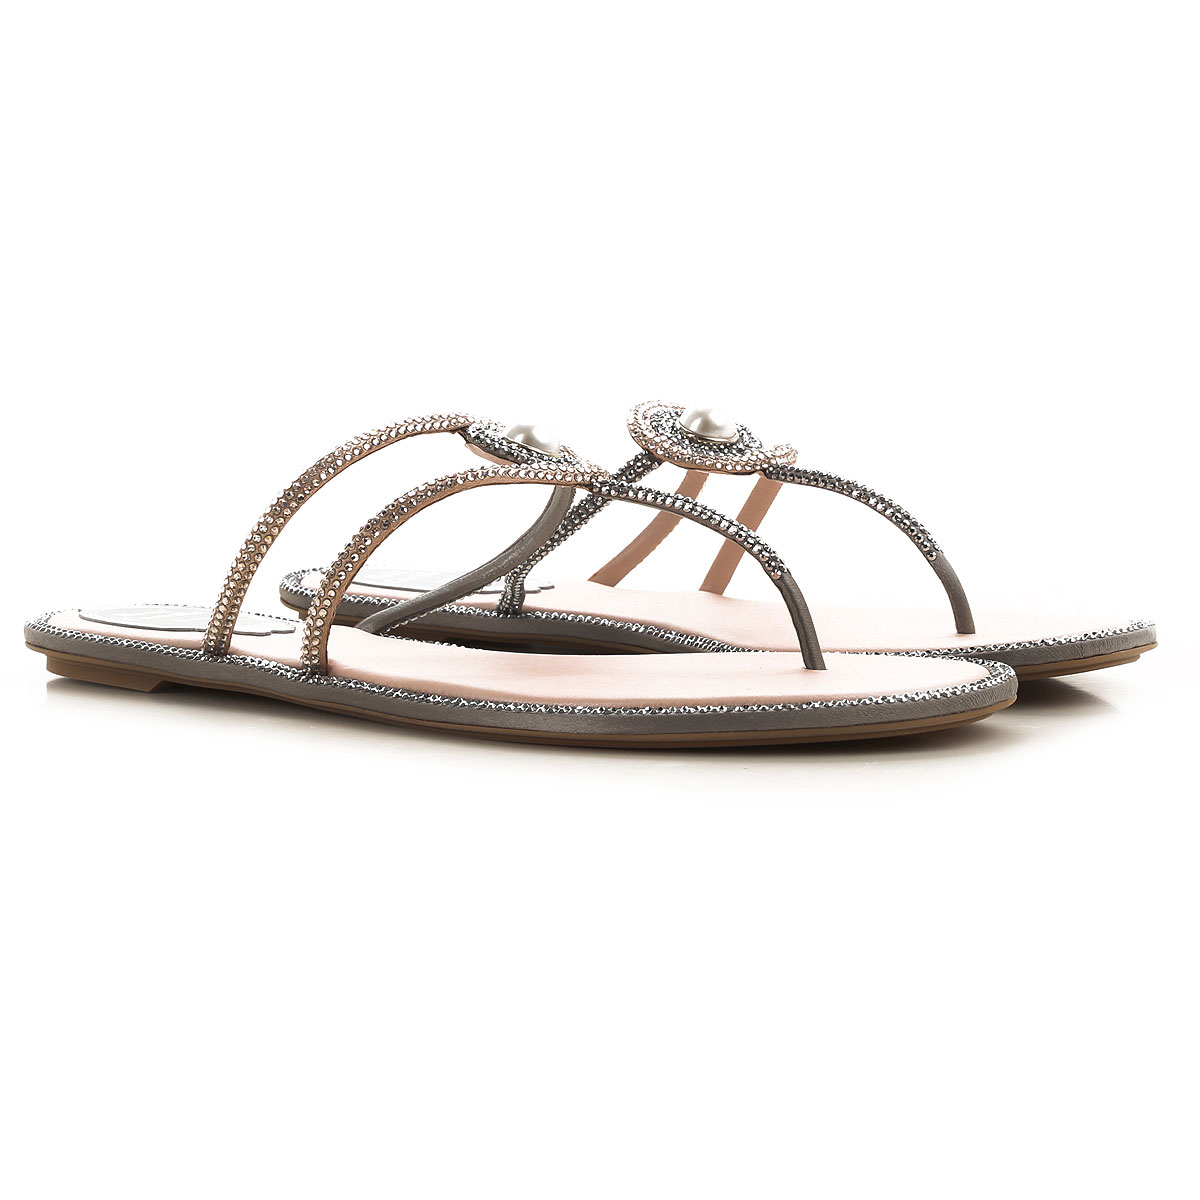 Rene Caovilla Sandals for Women On Sale, Grey Light, Leather, 2019, 6 6.5 8 9